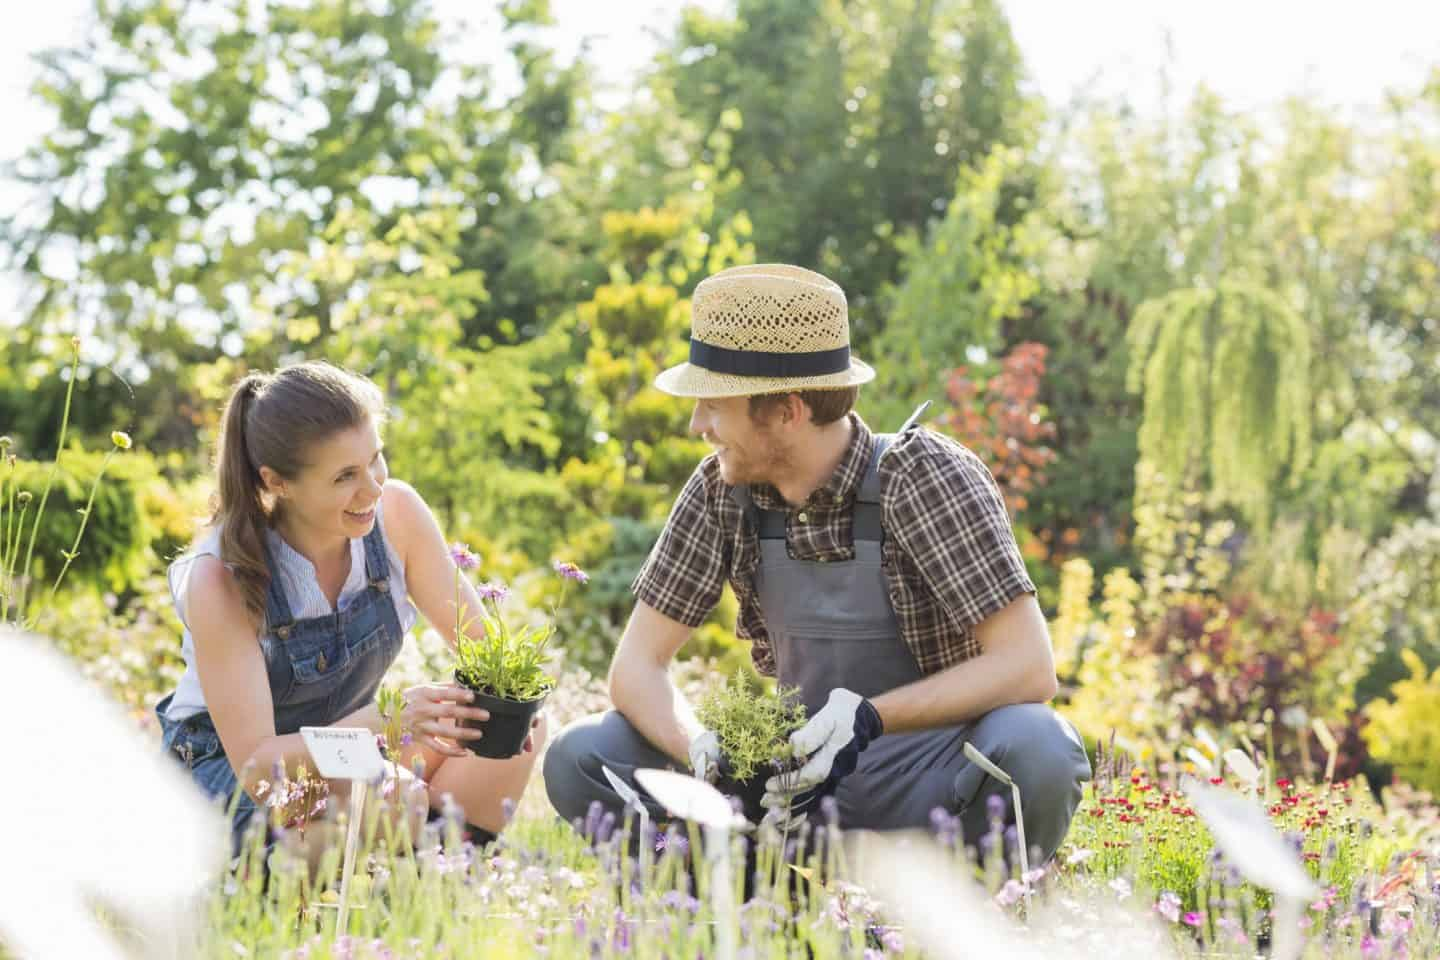 4-Top-Gardening-Trends-For-2019-